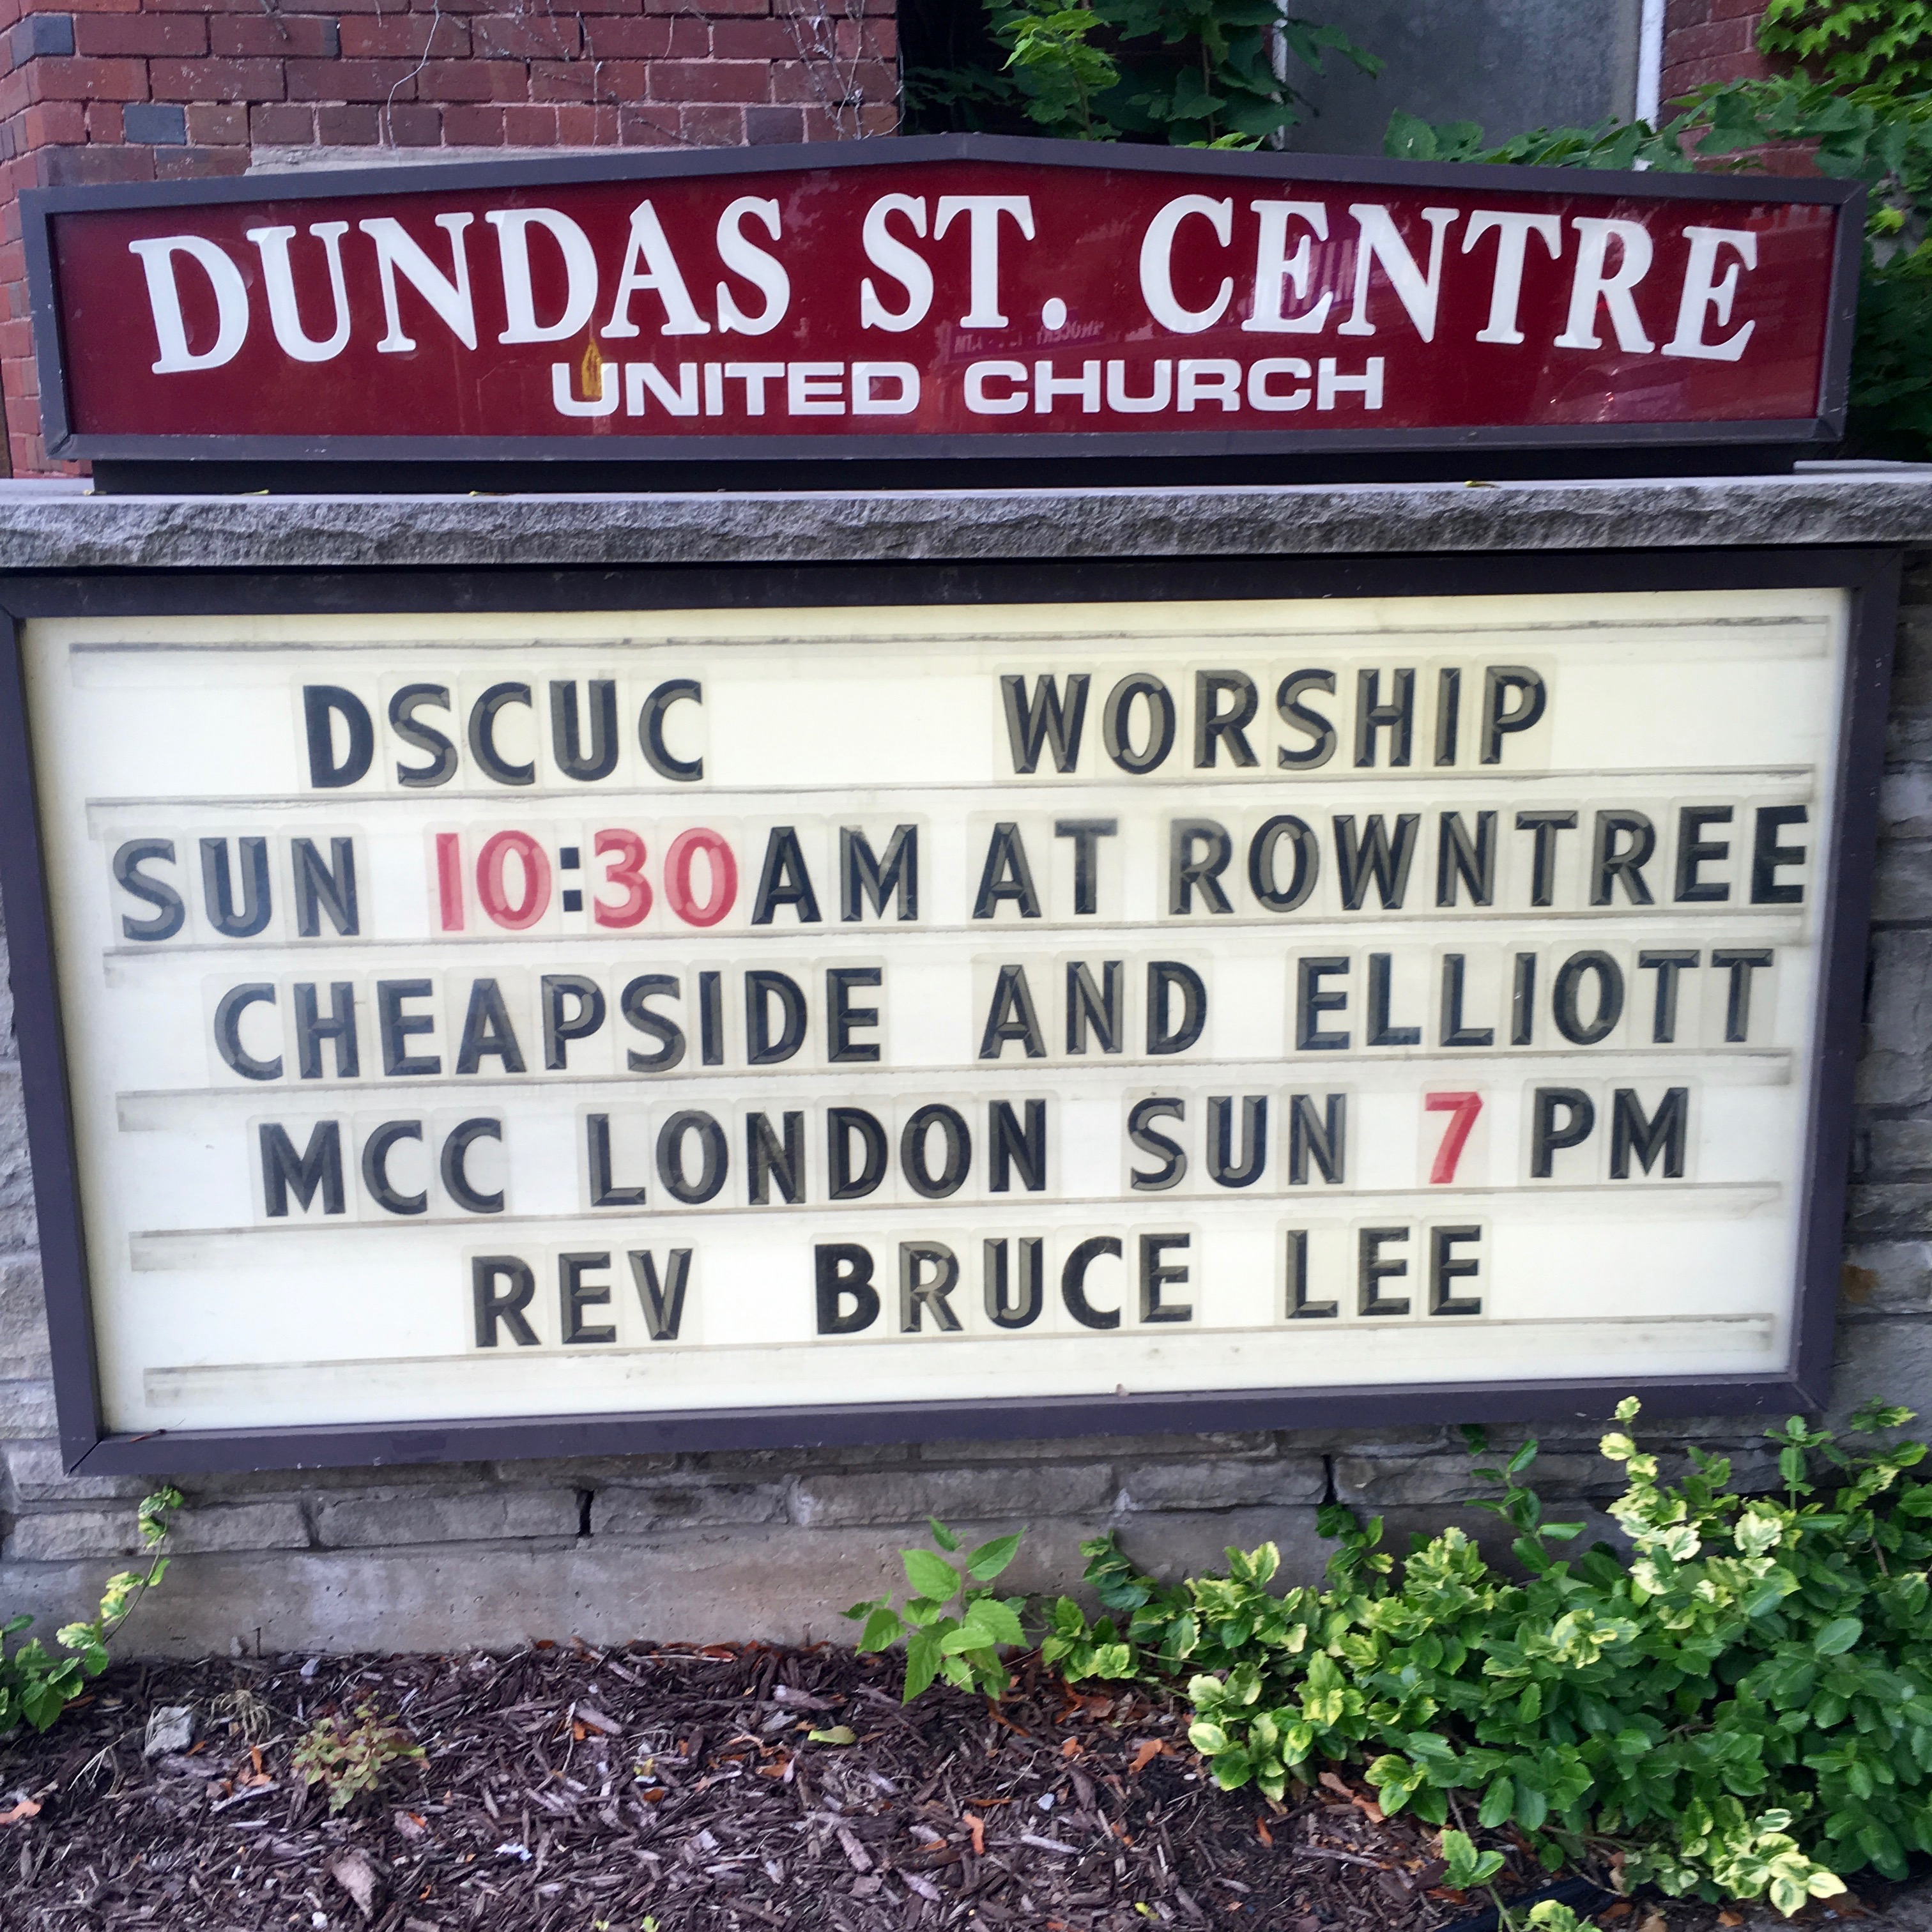 Rev Bruce Lee Church